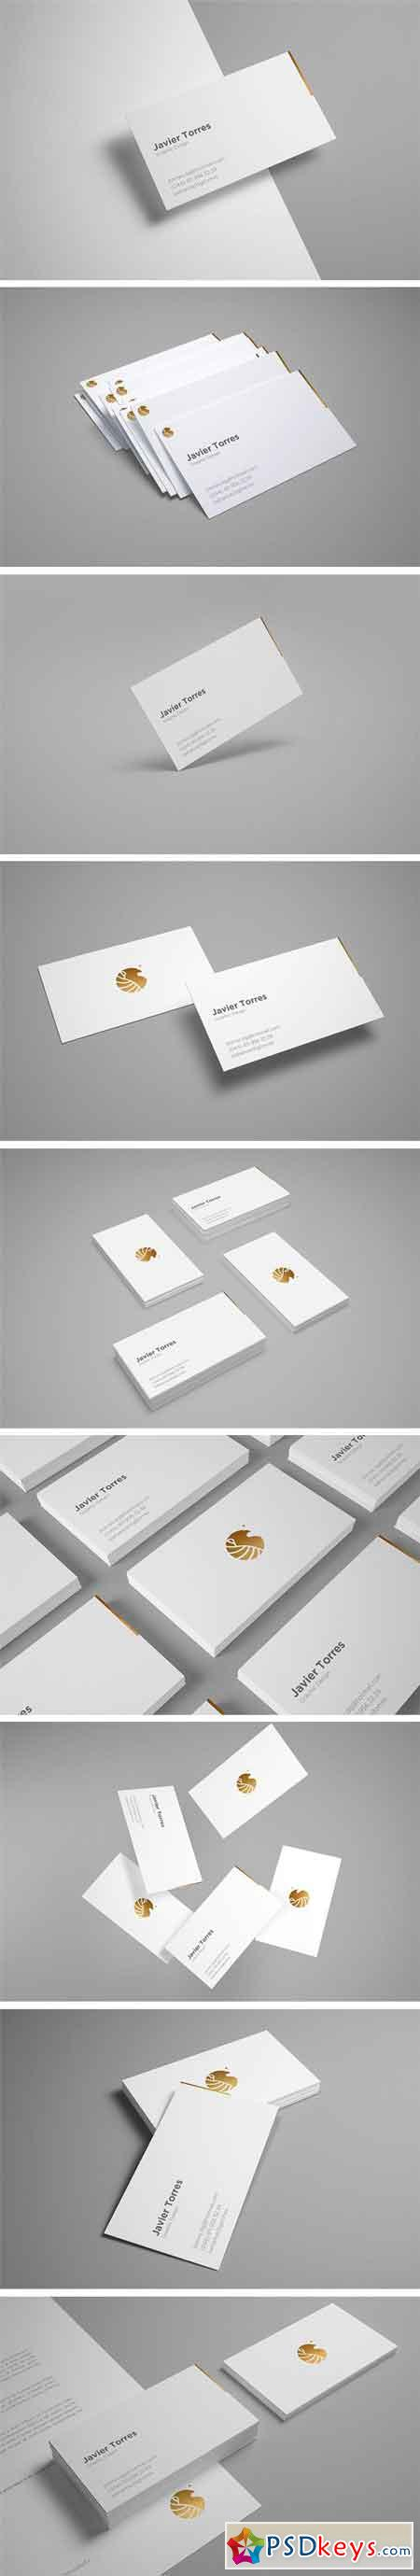 9 business cards mockup professional 1276774 free download 9 business cards mockup professional 1276774 reheart Image collections